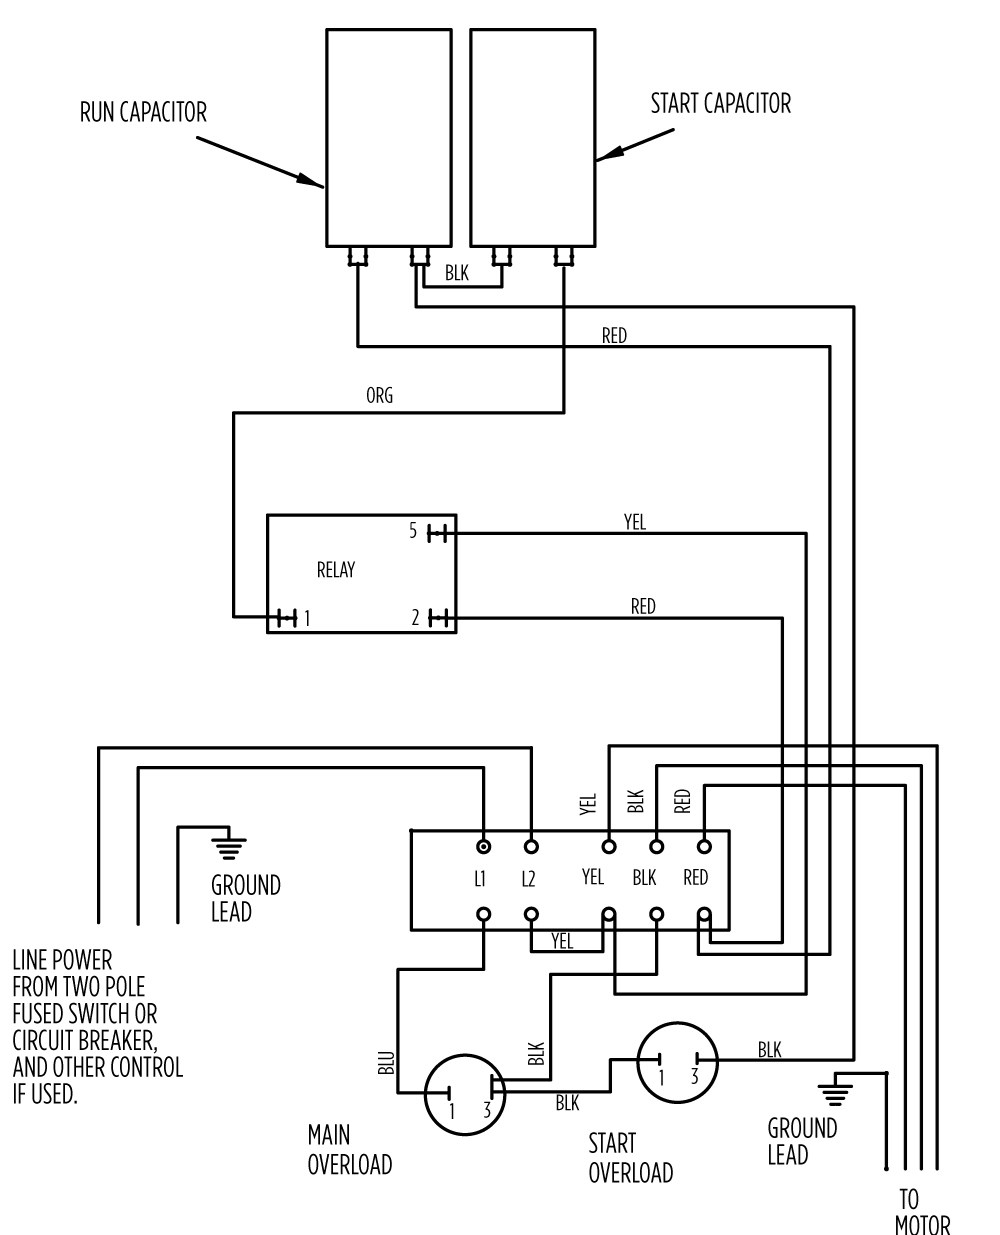 2 hp standard 282 301 8110_aim gallery?format=jpg&quality=80 aim manual page 55 single phase motors and controls motor standard wiring diagram symbols at gsmx.co